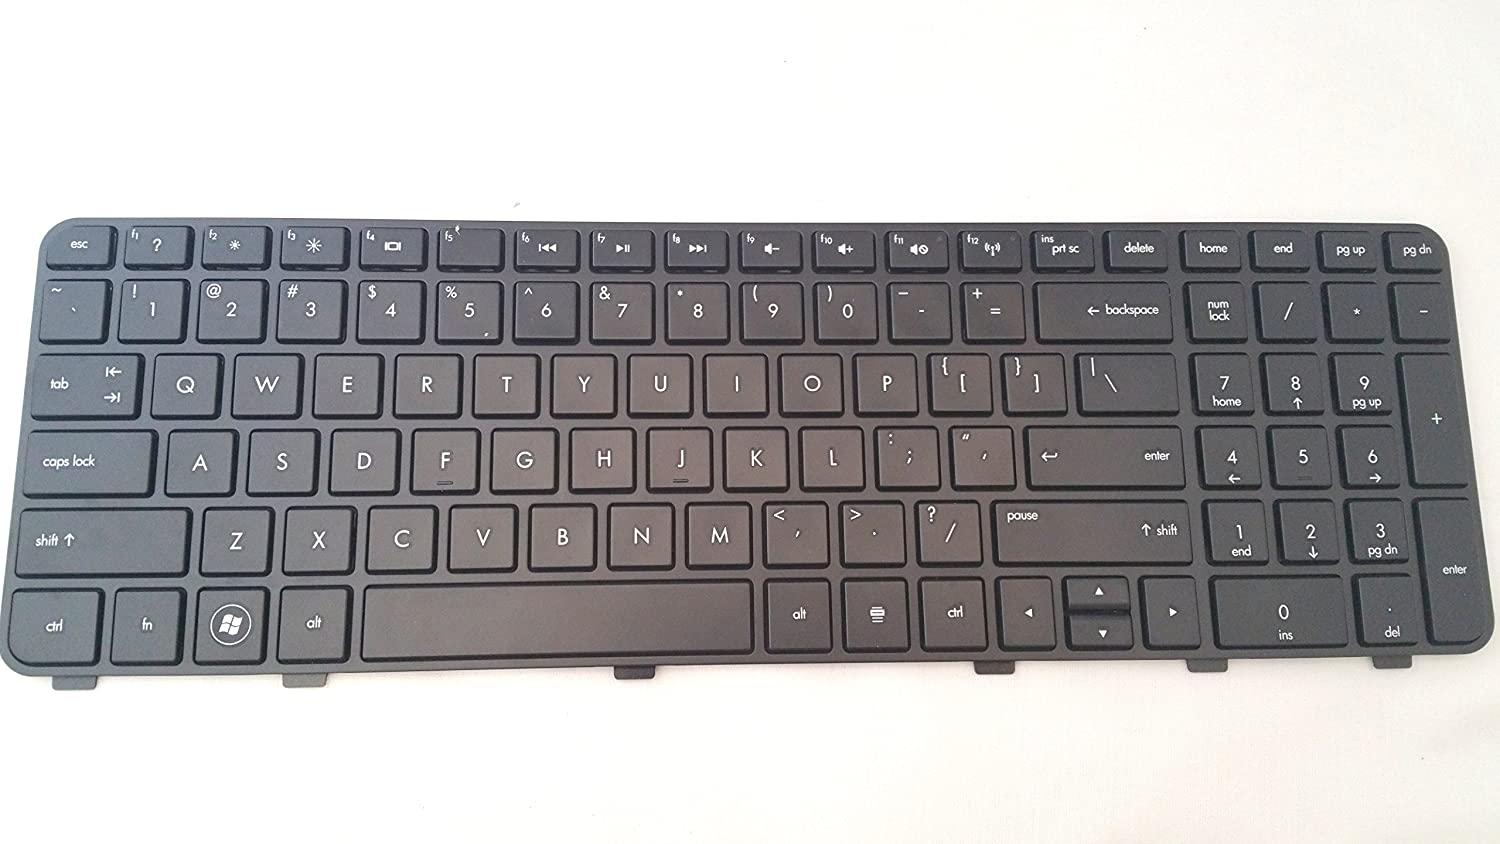 P&U New Black keyboard with Frame for HP Pavilion DV6-6120USDV6-6121HE DV6-6123CL DV6-6123NR DV6-6126NR DV6-6127CL DV6-6128NR DV6-6130US DV6-6131US DV6-6133CL DV6-6135DX DV6-6136NR DV6-6140US DV6-6143NR DV6-6144NR DV6-6145DX DV6-6146NR DV6-6148NR Laptop / Notebook US Layout